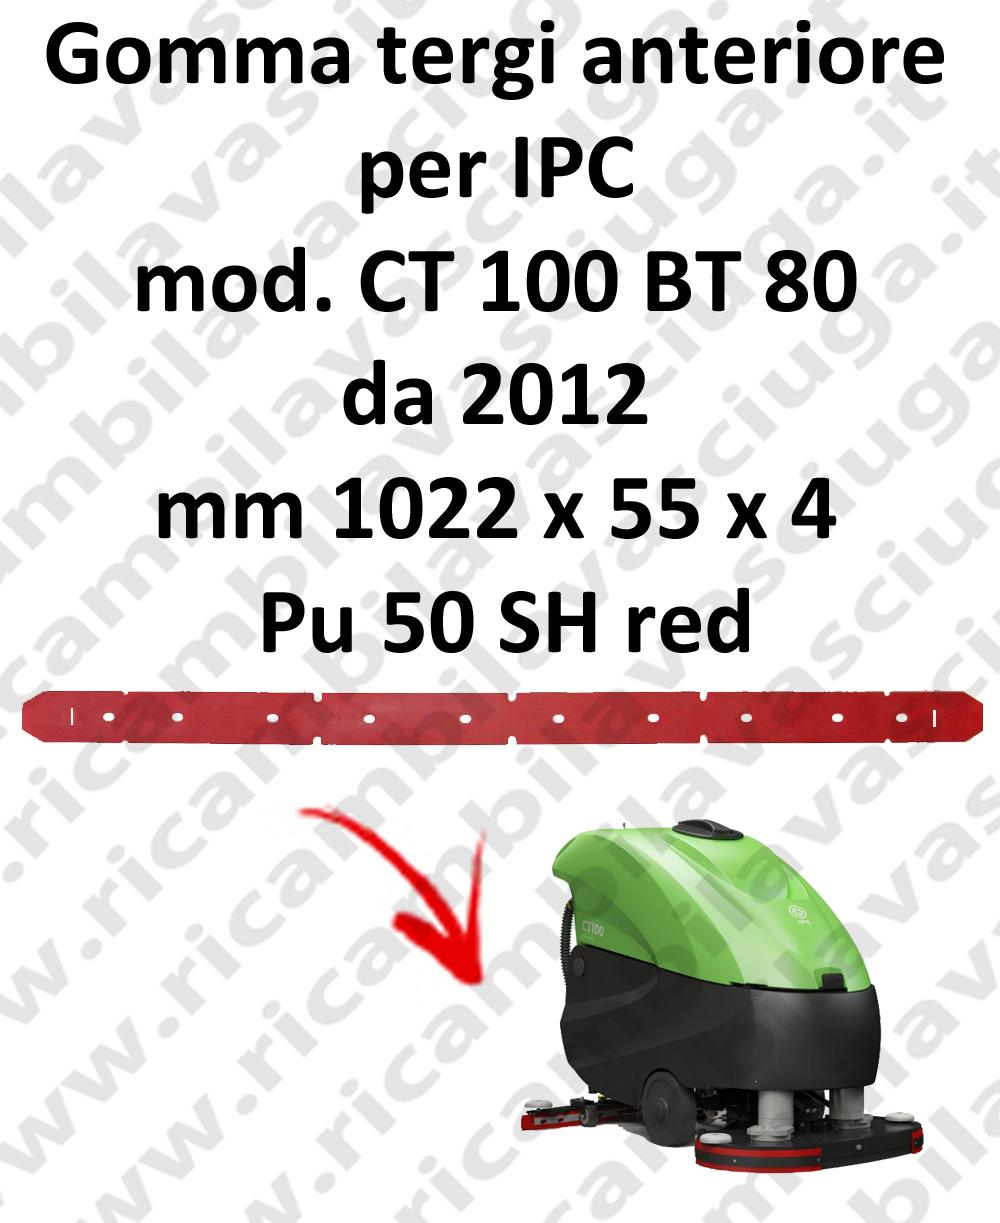 CT 100 BT 80 from 2012 Front Squeegee rubber for IPC